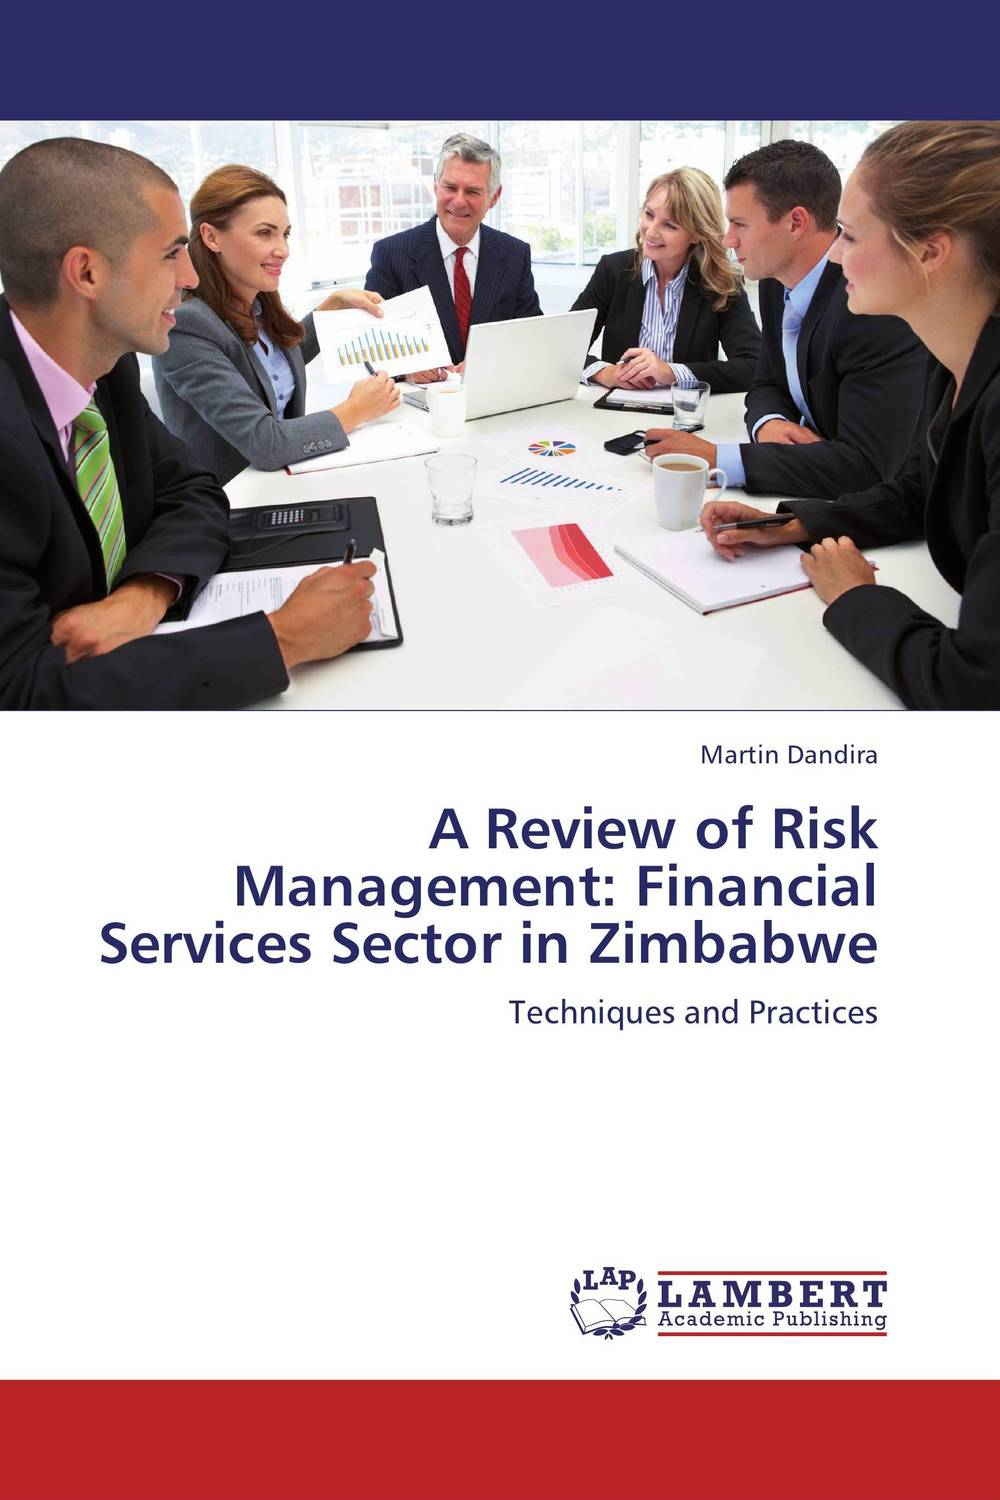 A Review of Risk Management: Financial Services Sector in Zimbabwe credit risk management practices